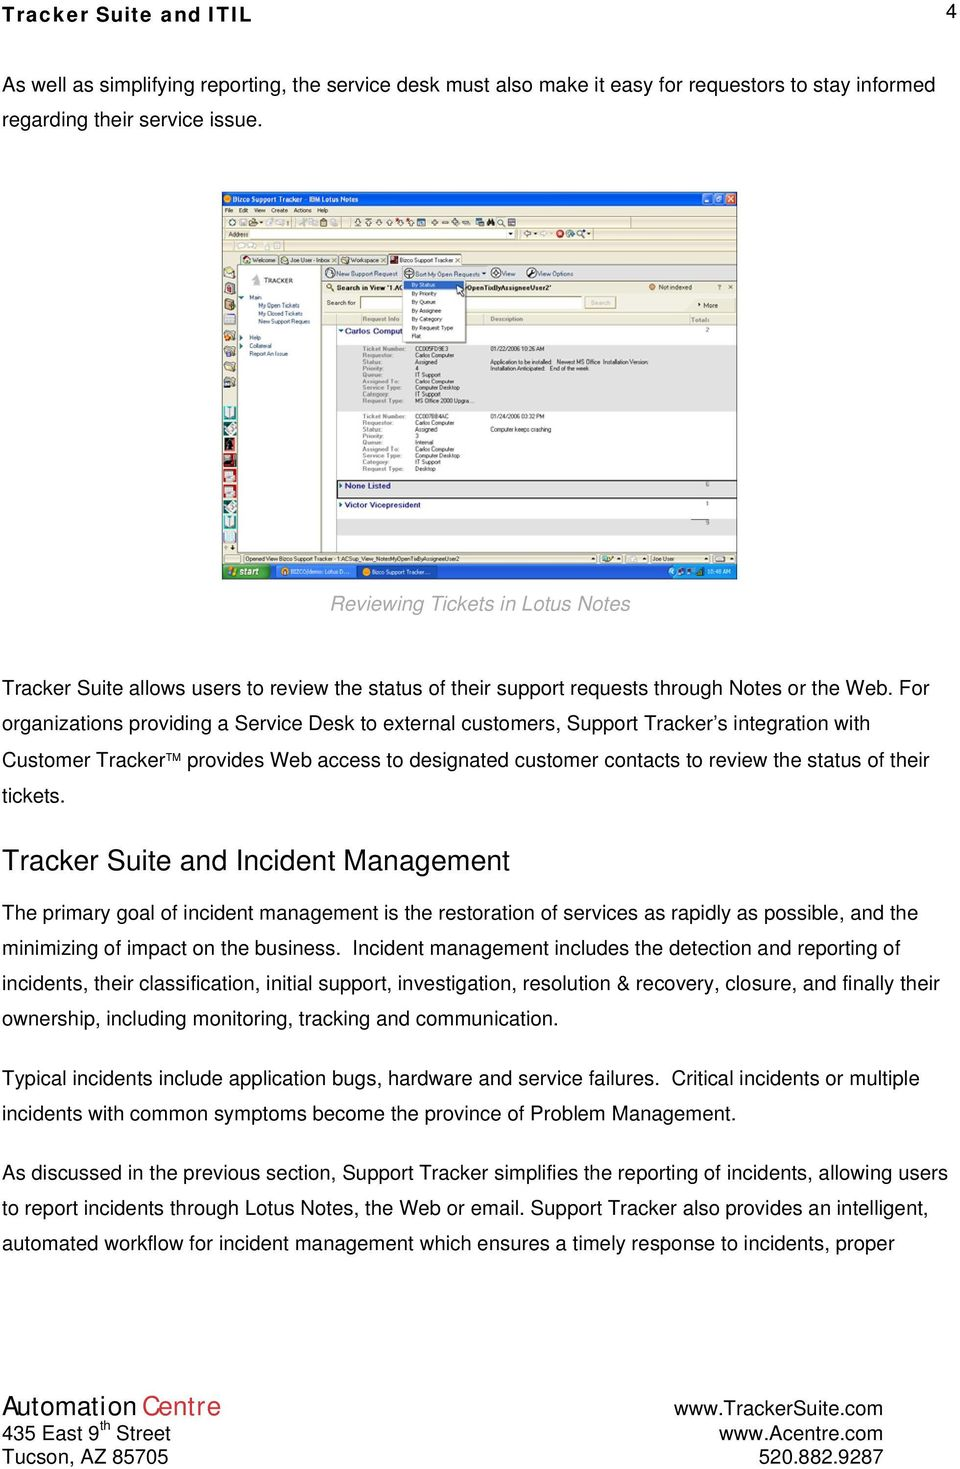 For organizations providing a Service Desk to external customers, Support Tracker s integration with Customer Tracker provides Web access to designated customer contacts to review the status of their